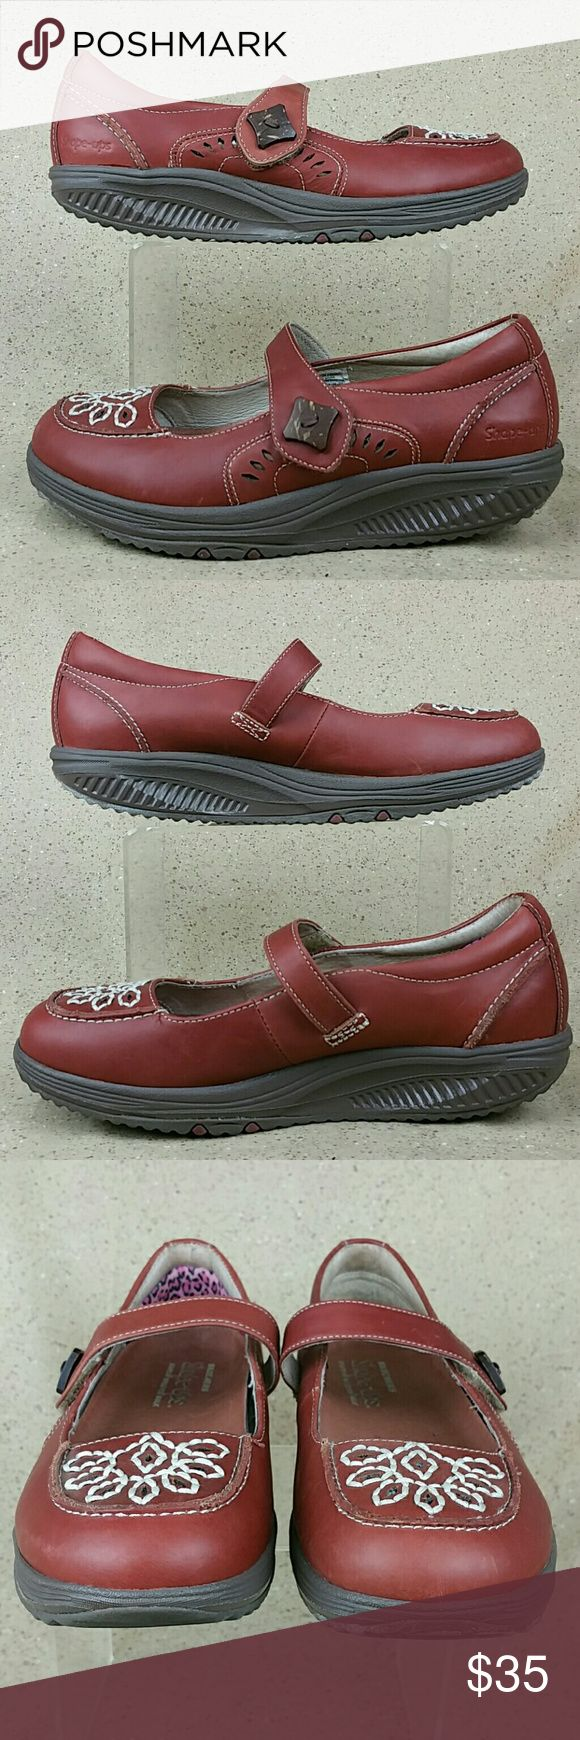 Skechers Shape-Ups Mary Janes Embroidered W 6 Skechers Shape-Ups 24883 These shoes are pre-owned in nice condition. Gentle wear on the outside from use includes scuffs. Little to no wear to the bottoms. Look over the pictures carefully before purchasing. Skechers Shape-Ups Shoes Flats & Loafers